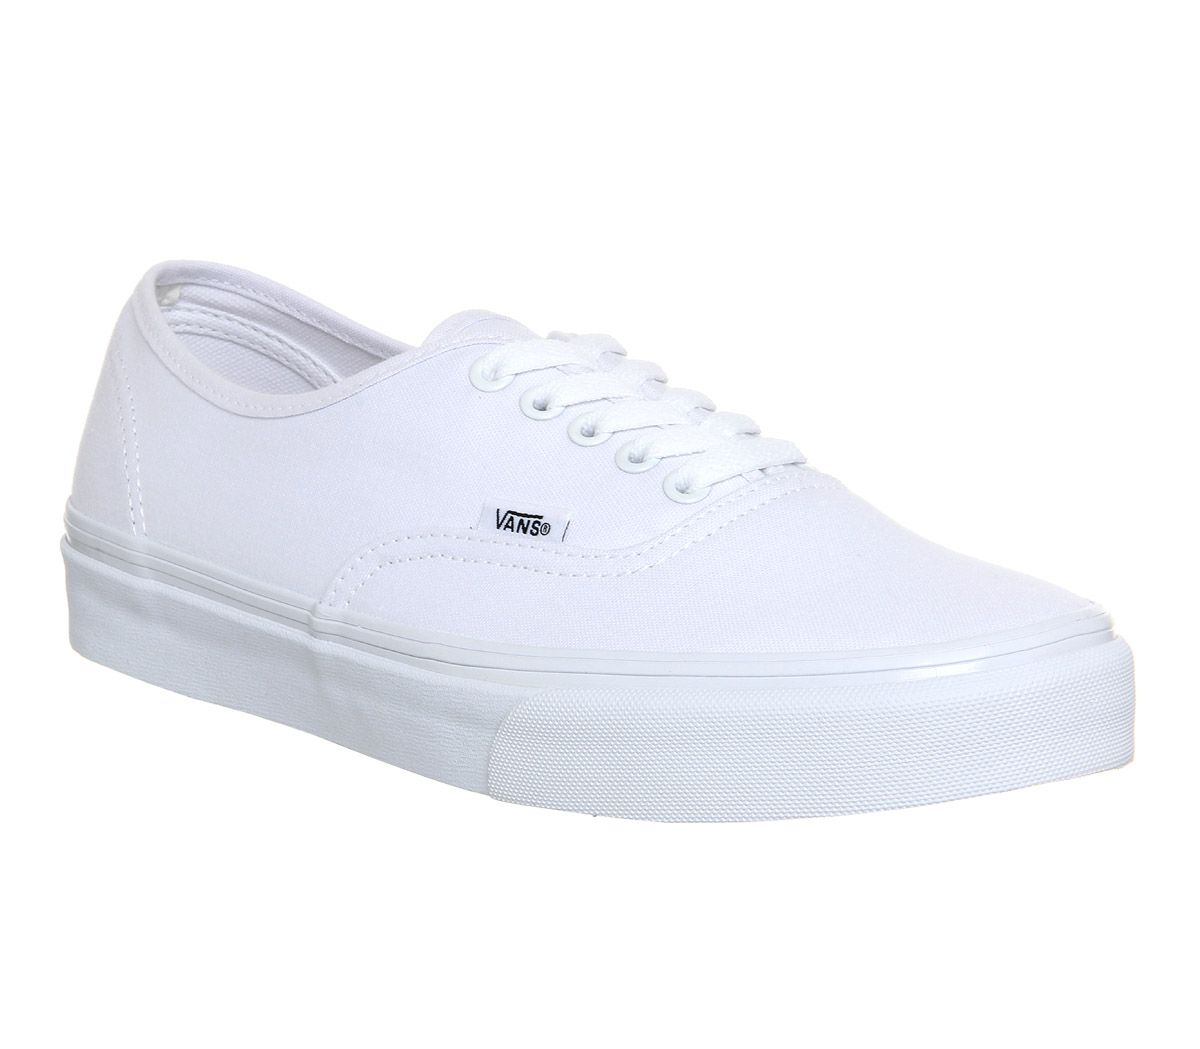 0fcf33b95e26 Vans Authentic True White - Unisex Sports